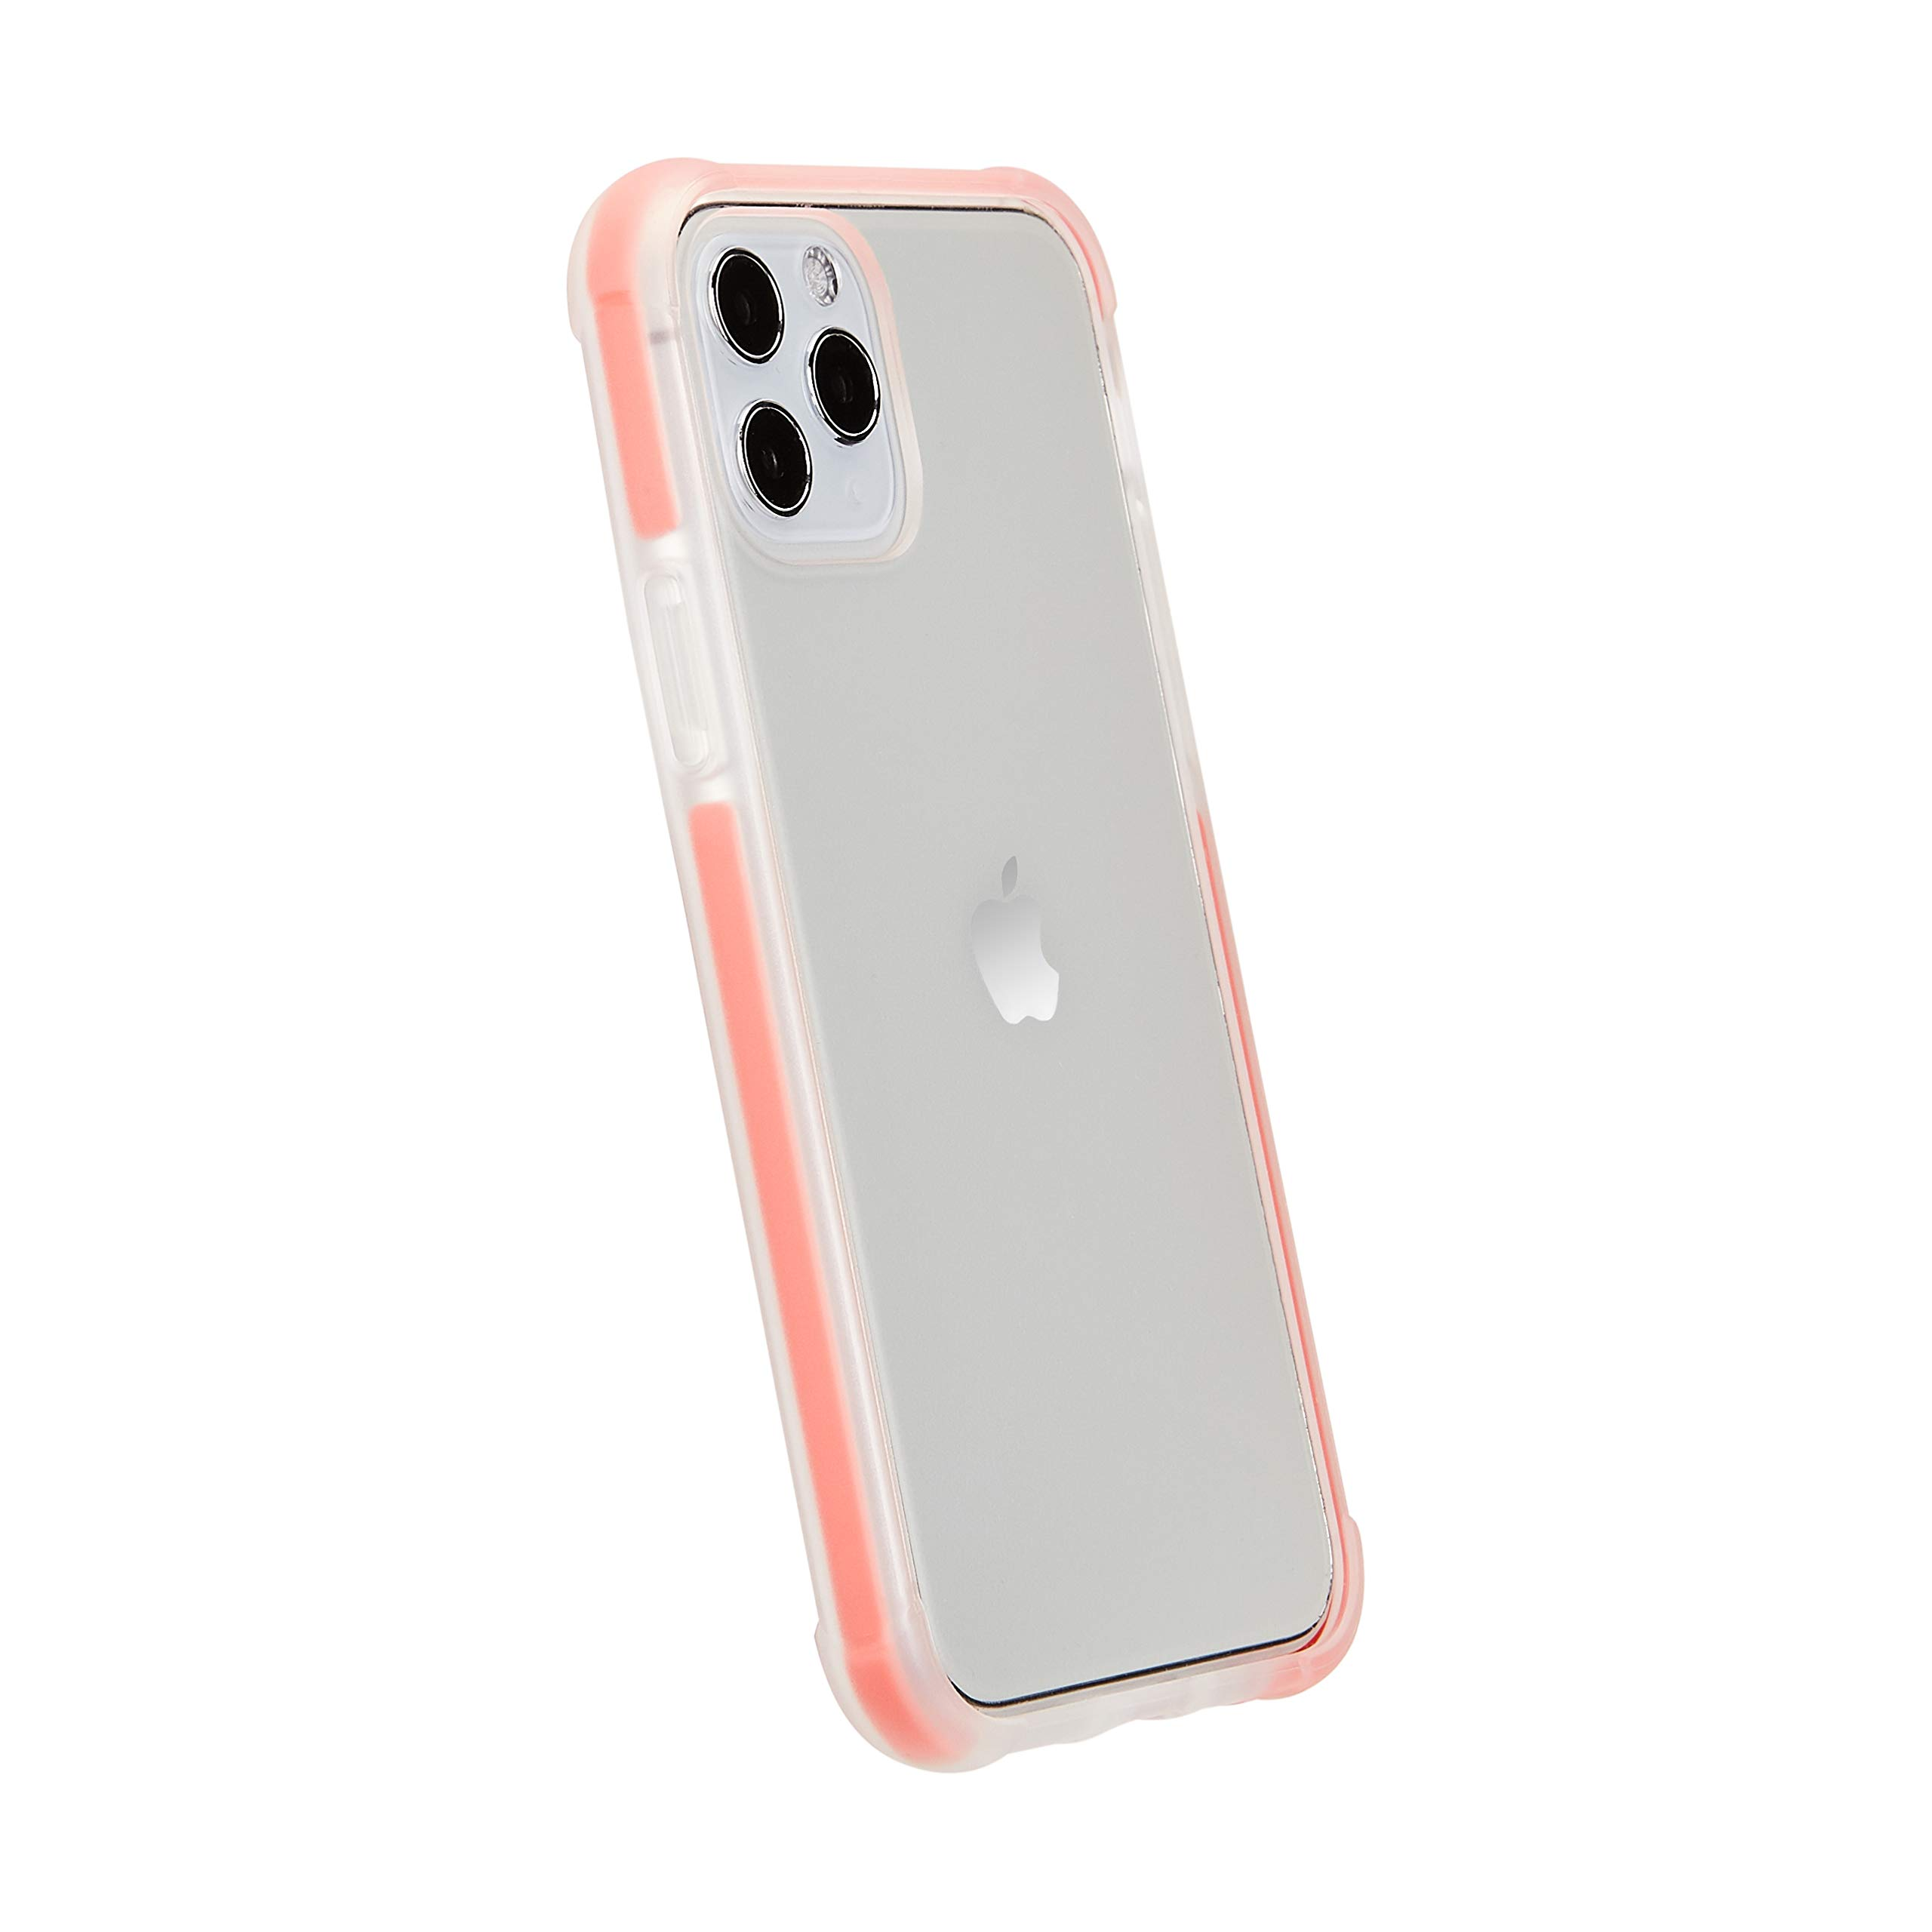 AmazonBasics iPhone 11 Pro Max Crystal Mobile Phone Case (Protective & Anti Scratch) - Red Accent